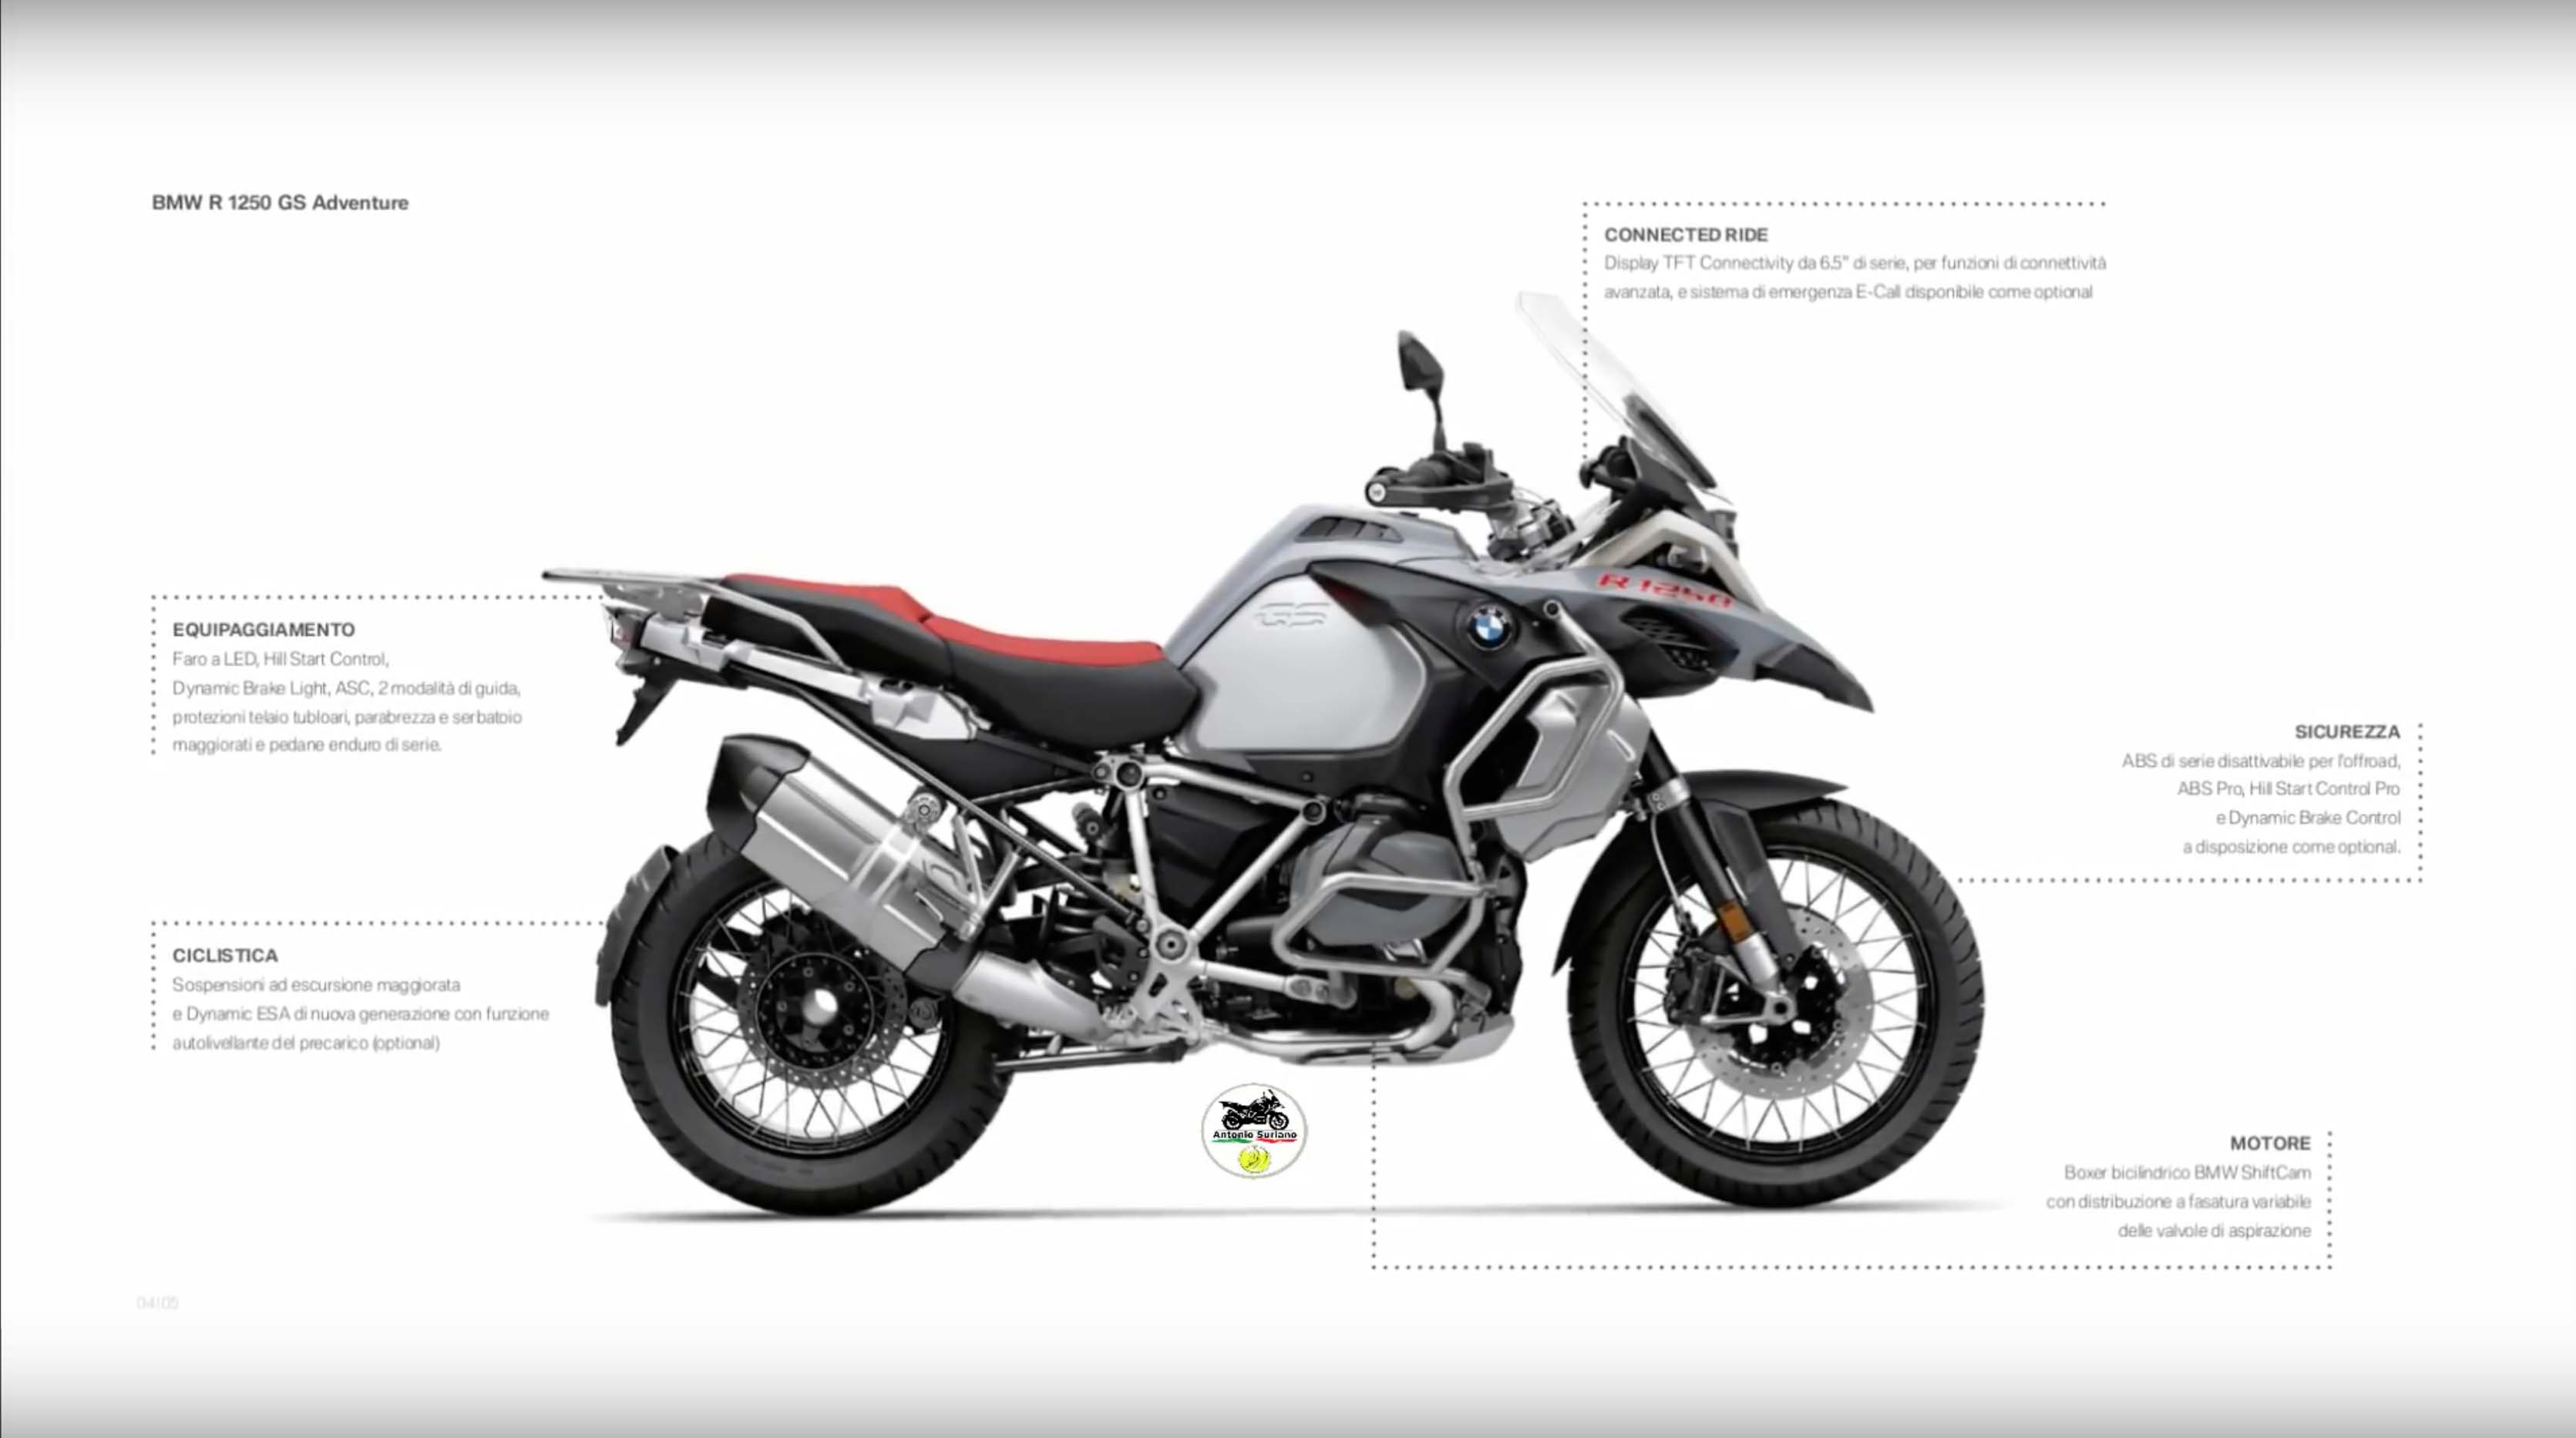 Leaked: Photos and Details of the 2019 BMW R1250GS ...